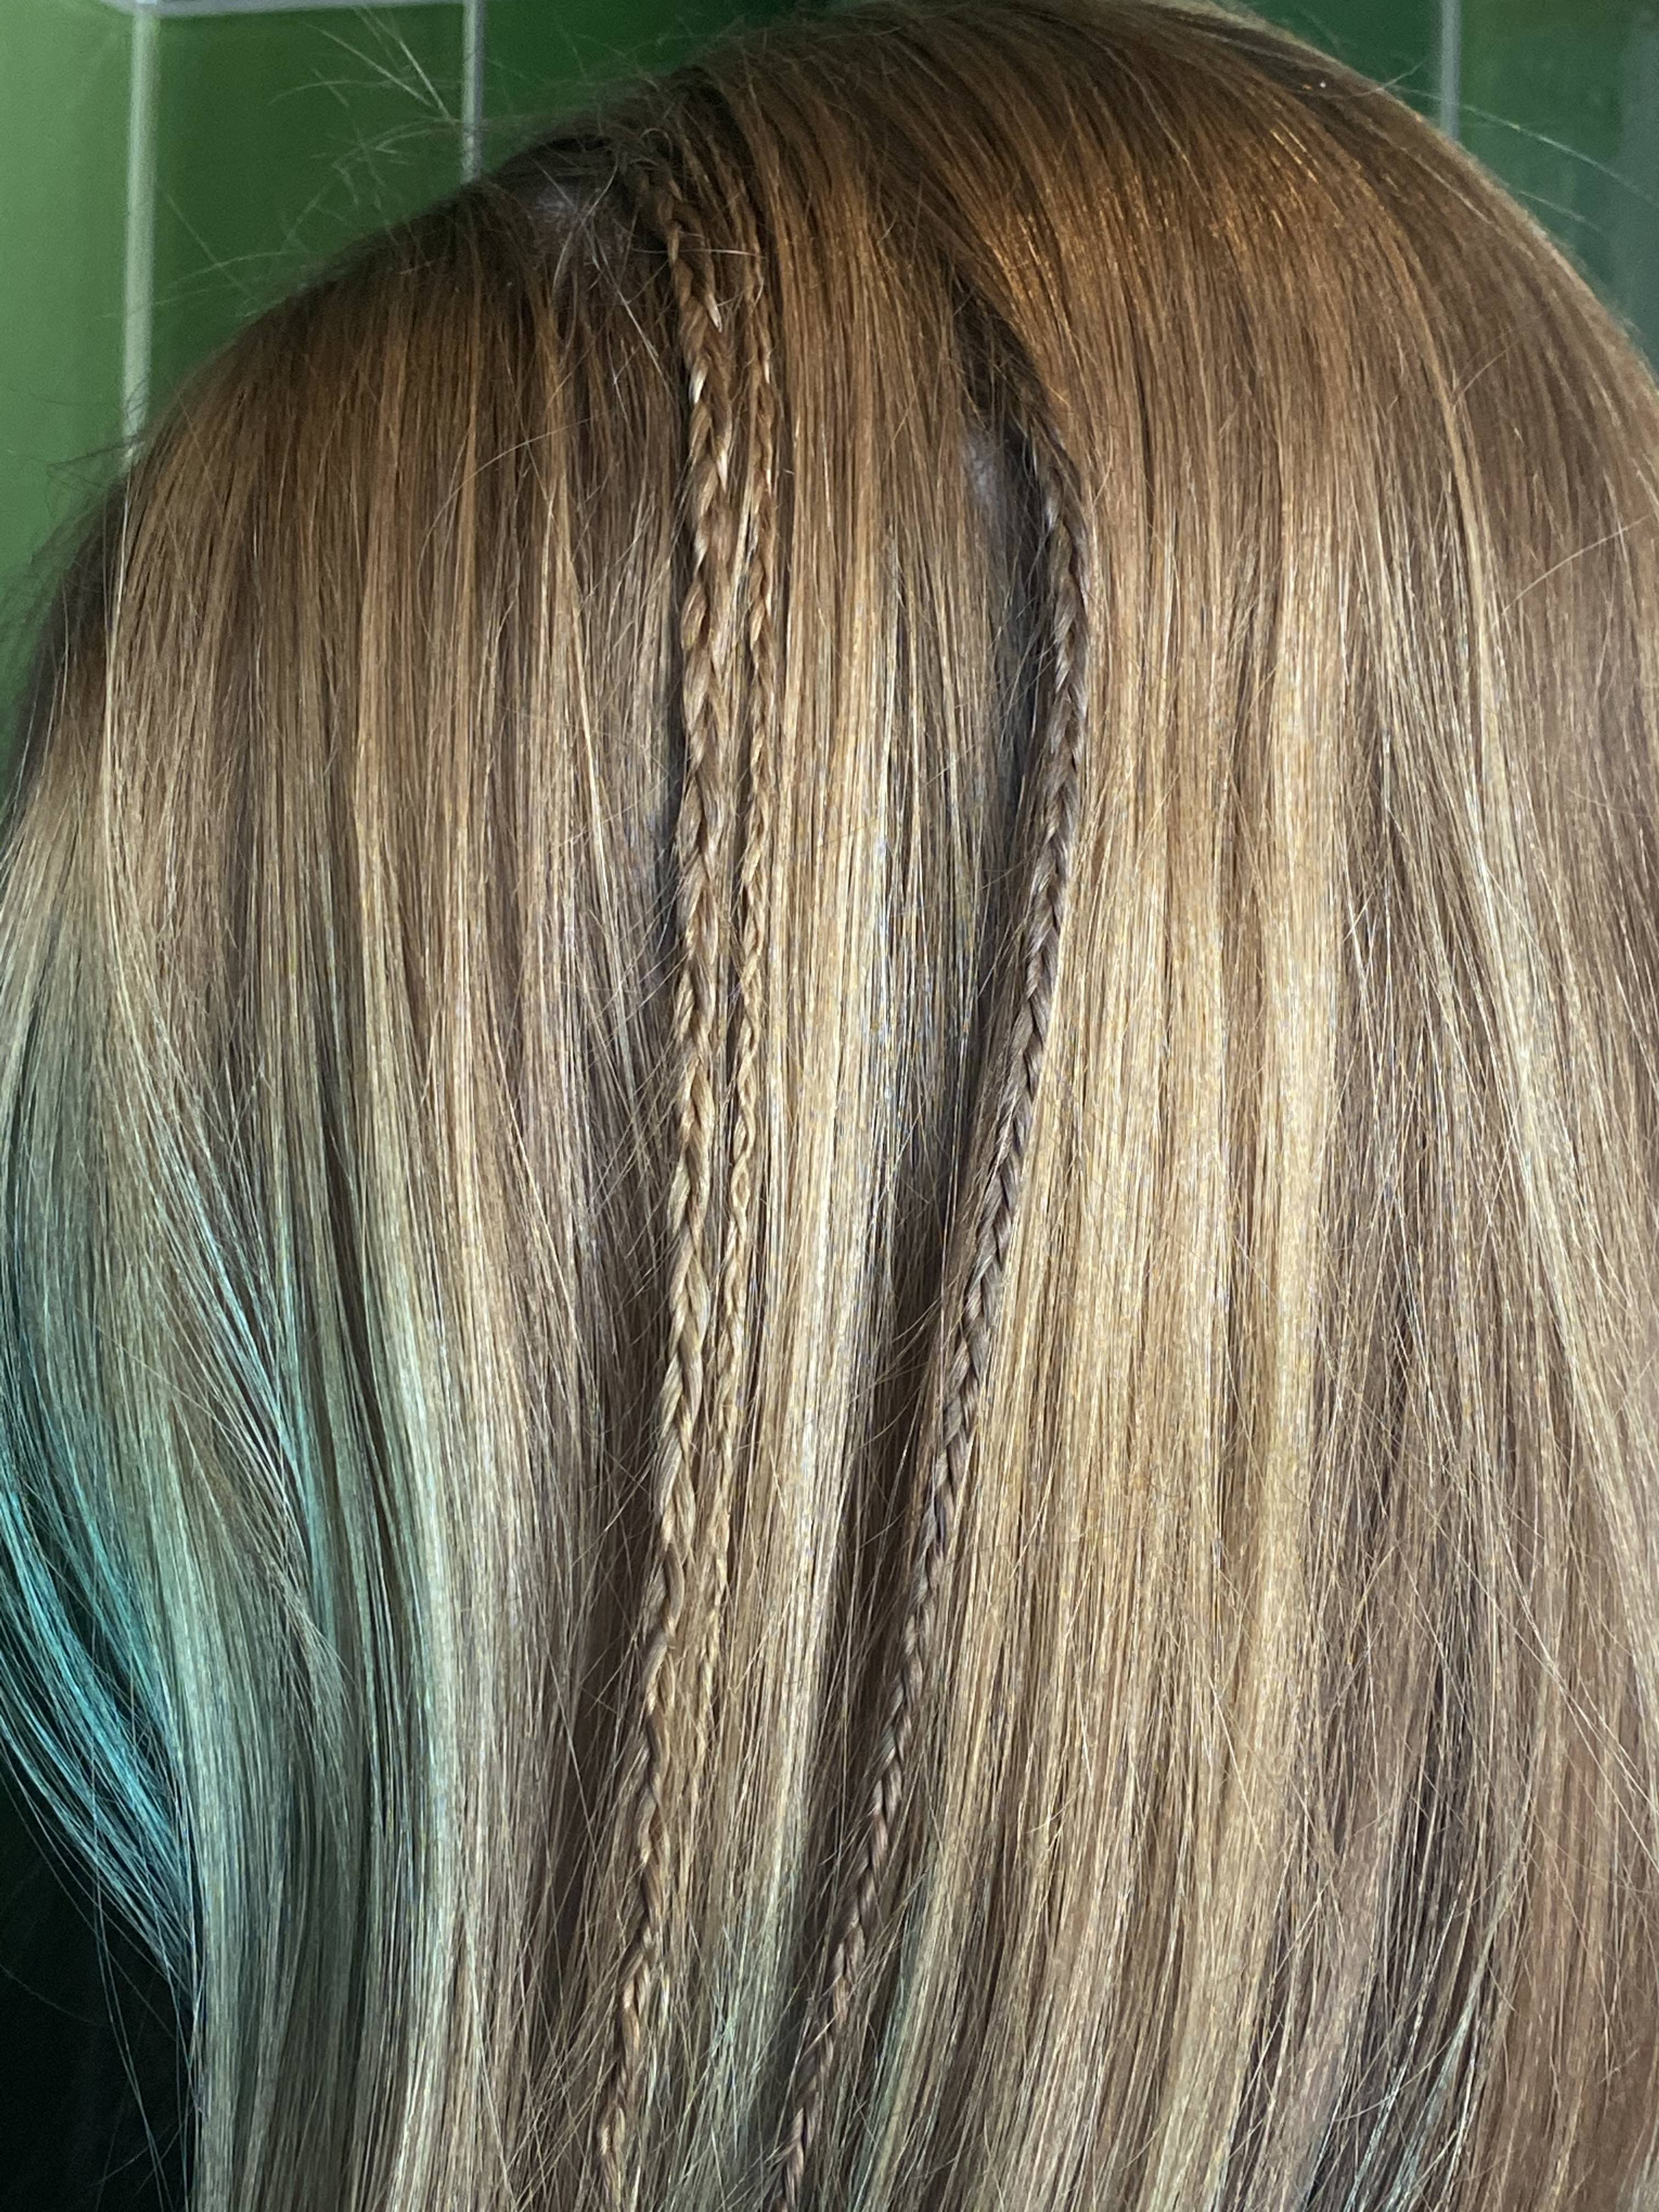 girl with straight blonde hair and blue tips poses with tiny braids in her hair